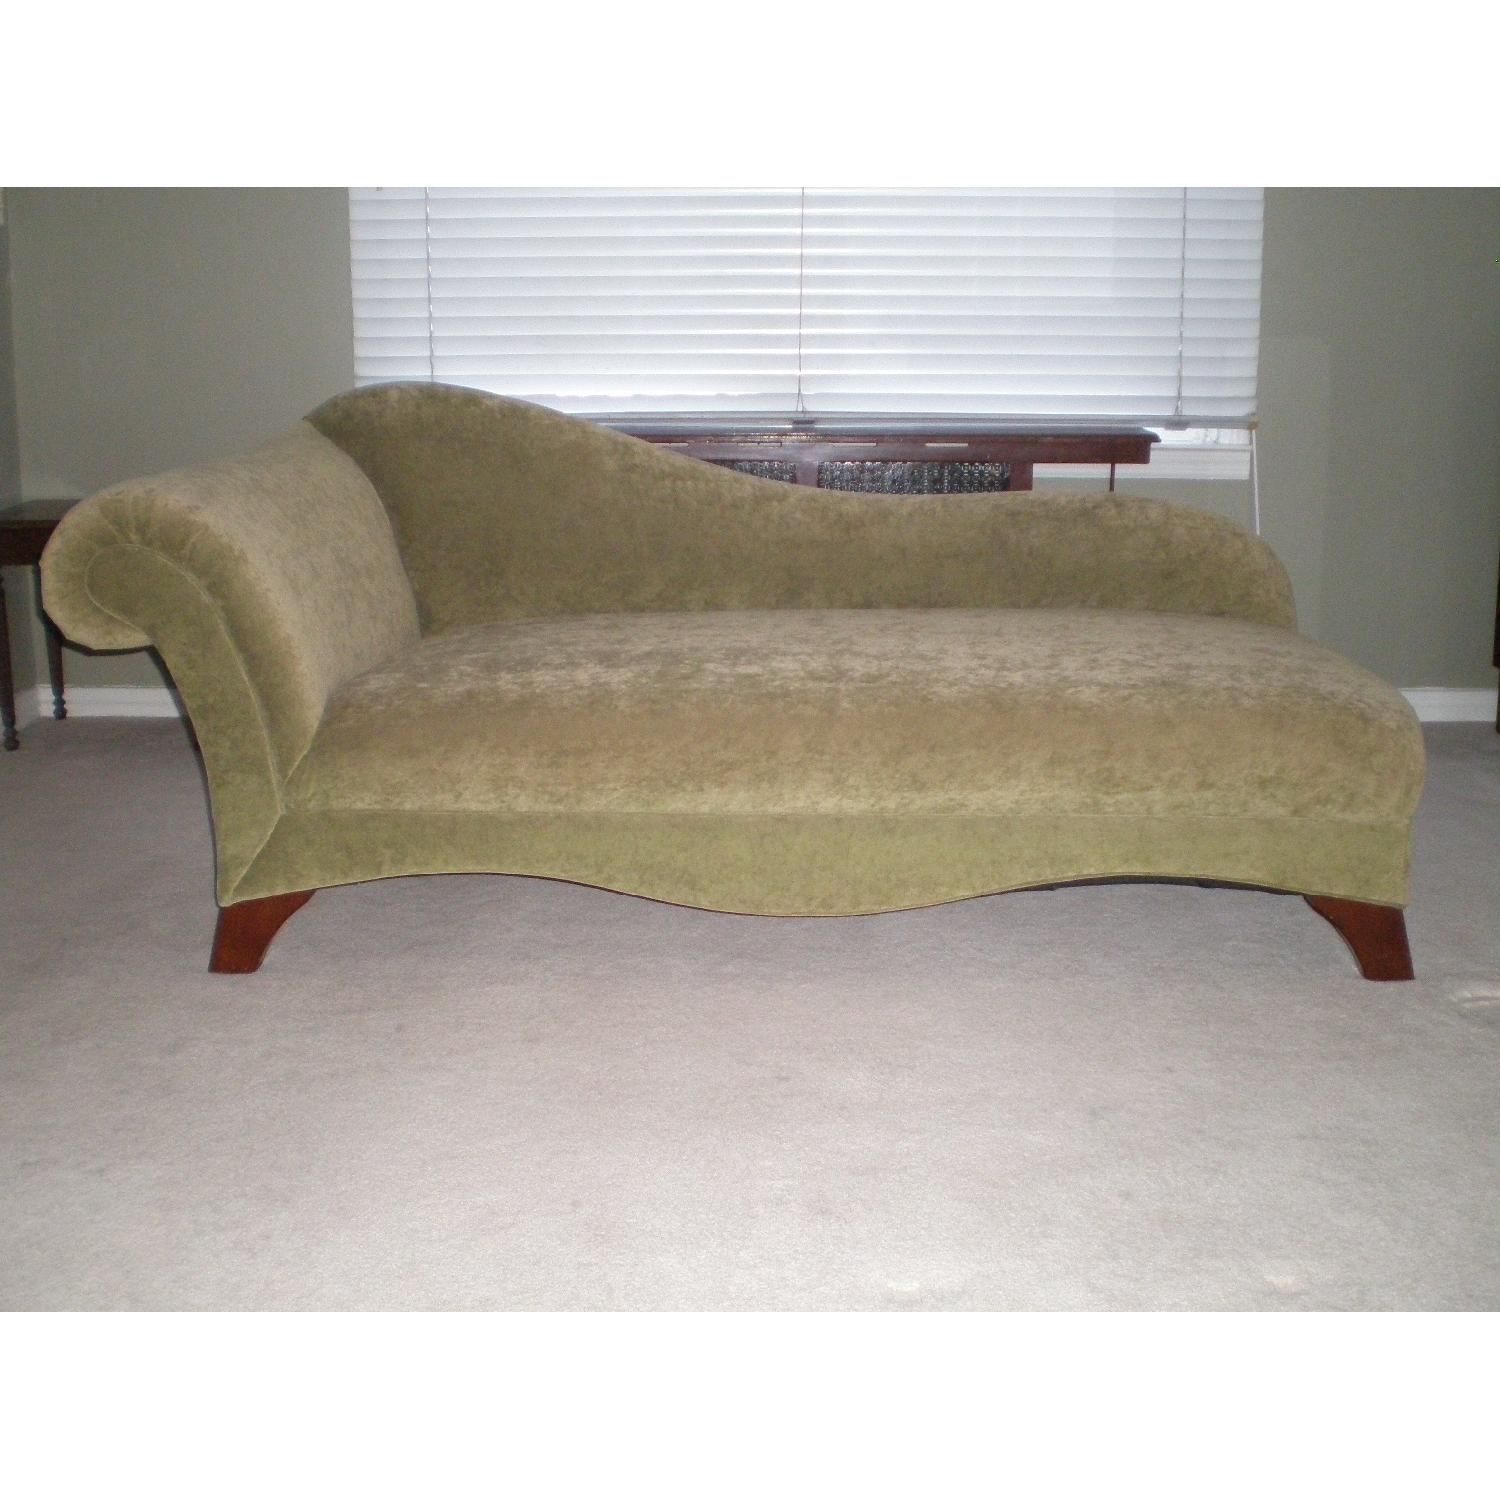 Chaise Lounge with Matching Pillow - image-2